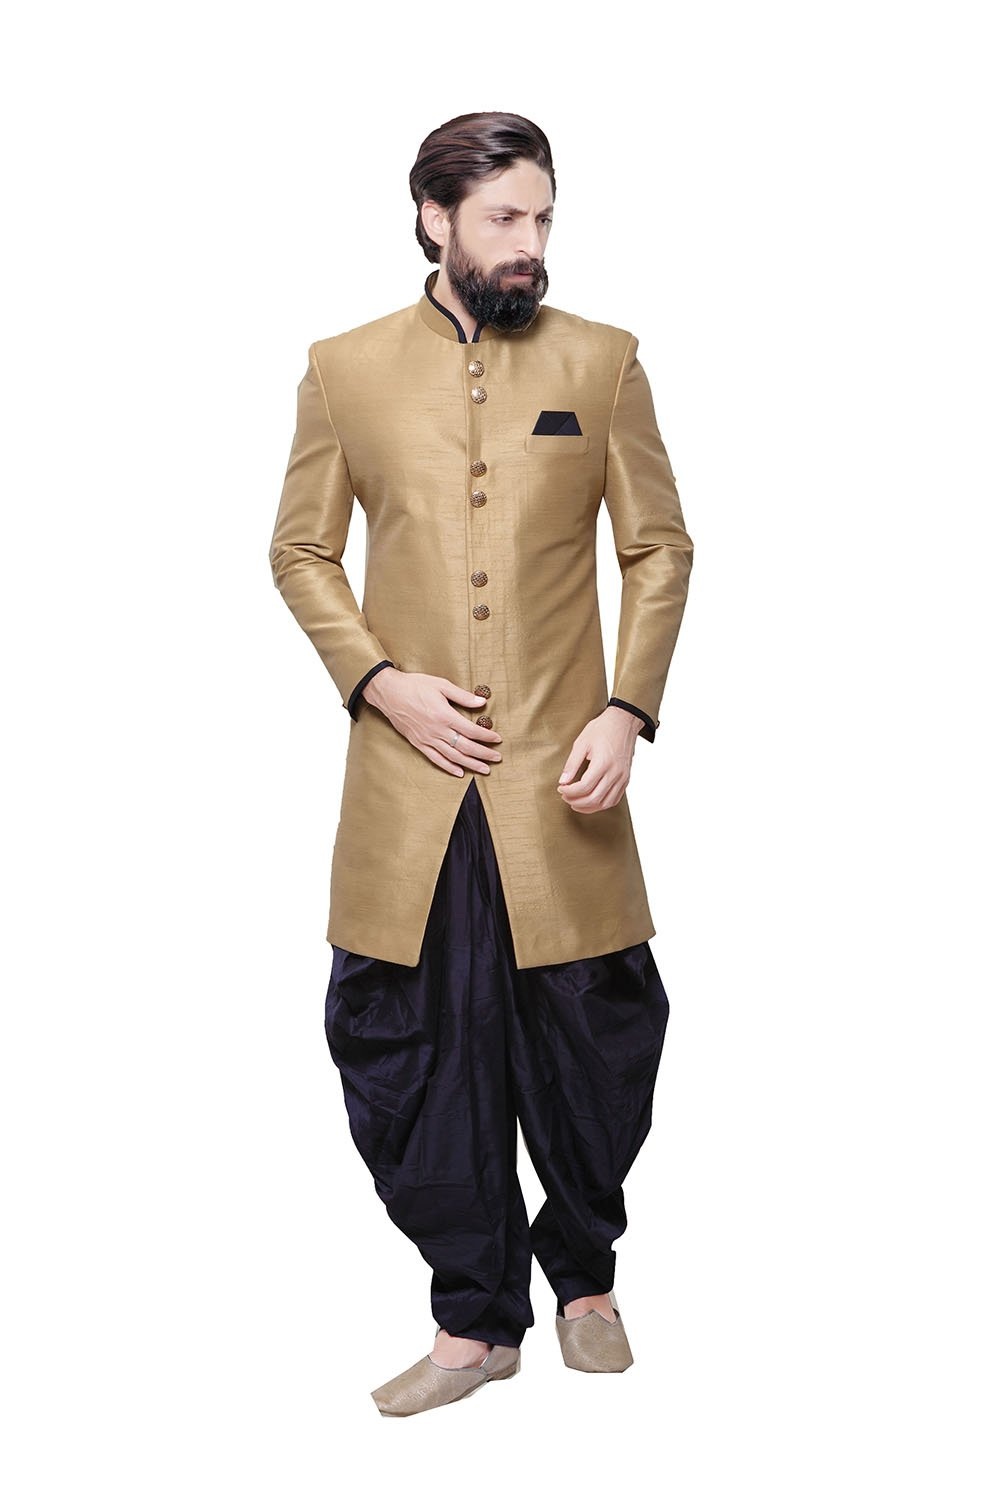 Indian Sherwani For Men Readymade Designer Partywear For Wedding Exclusive Fashion Indo-Western Dress by FourCorners2013